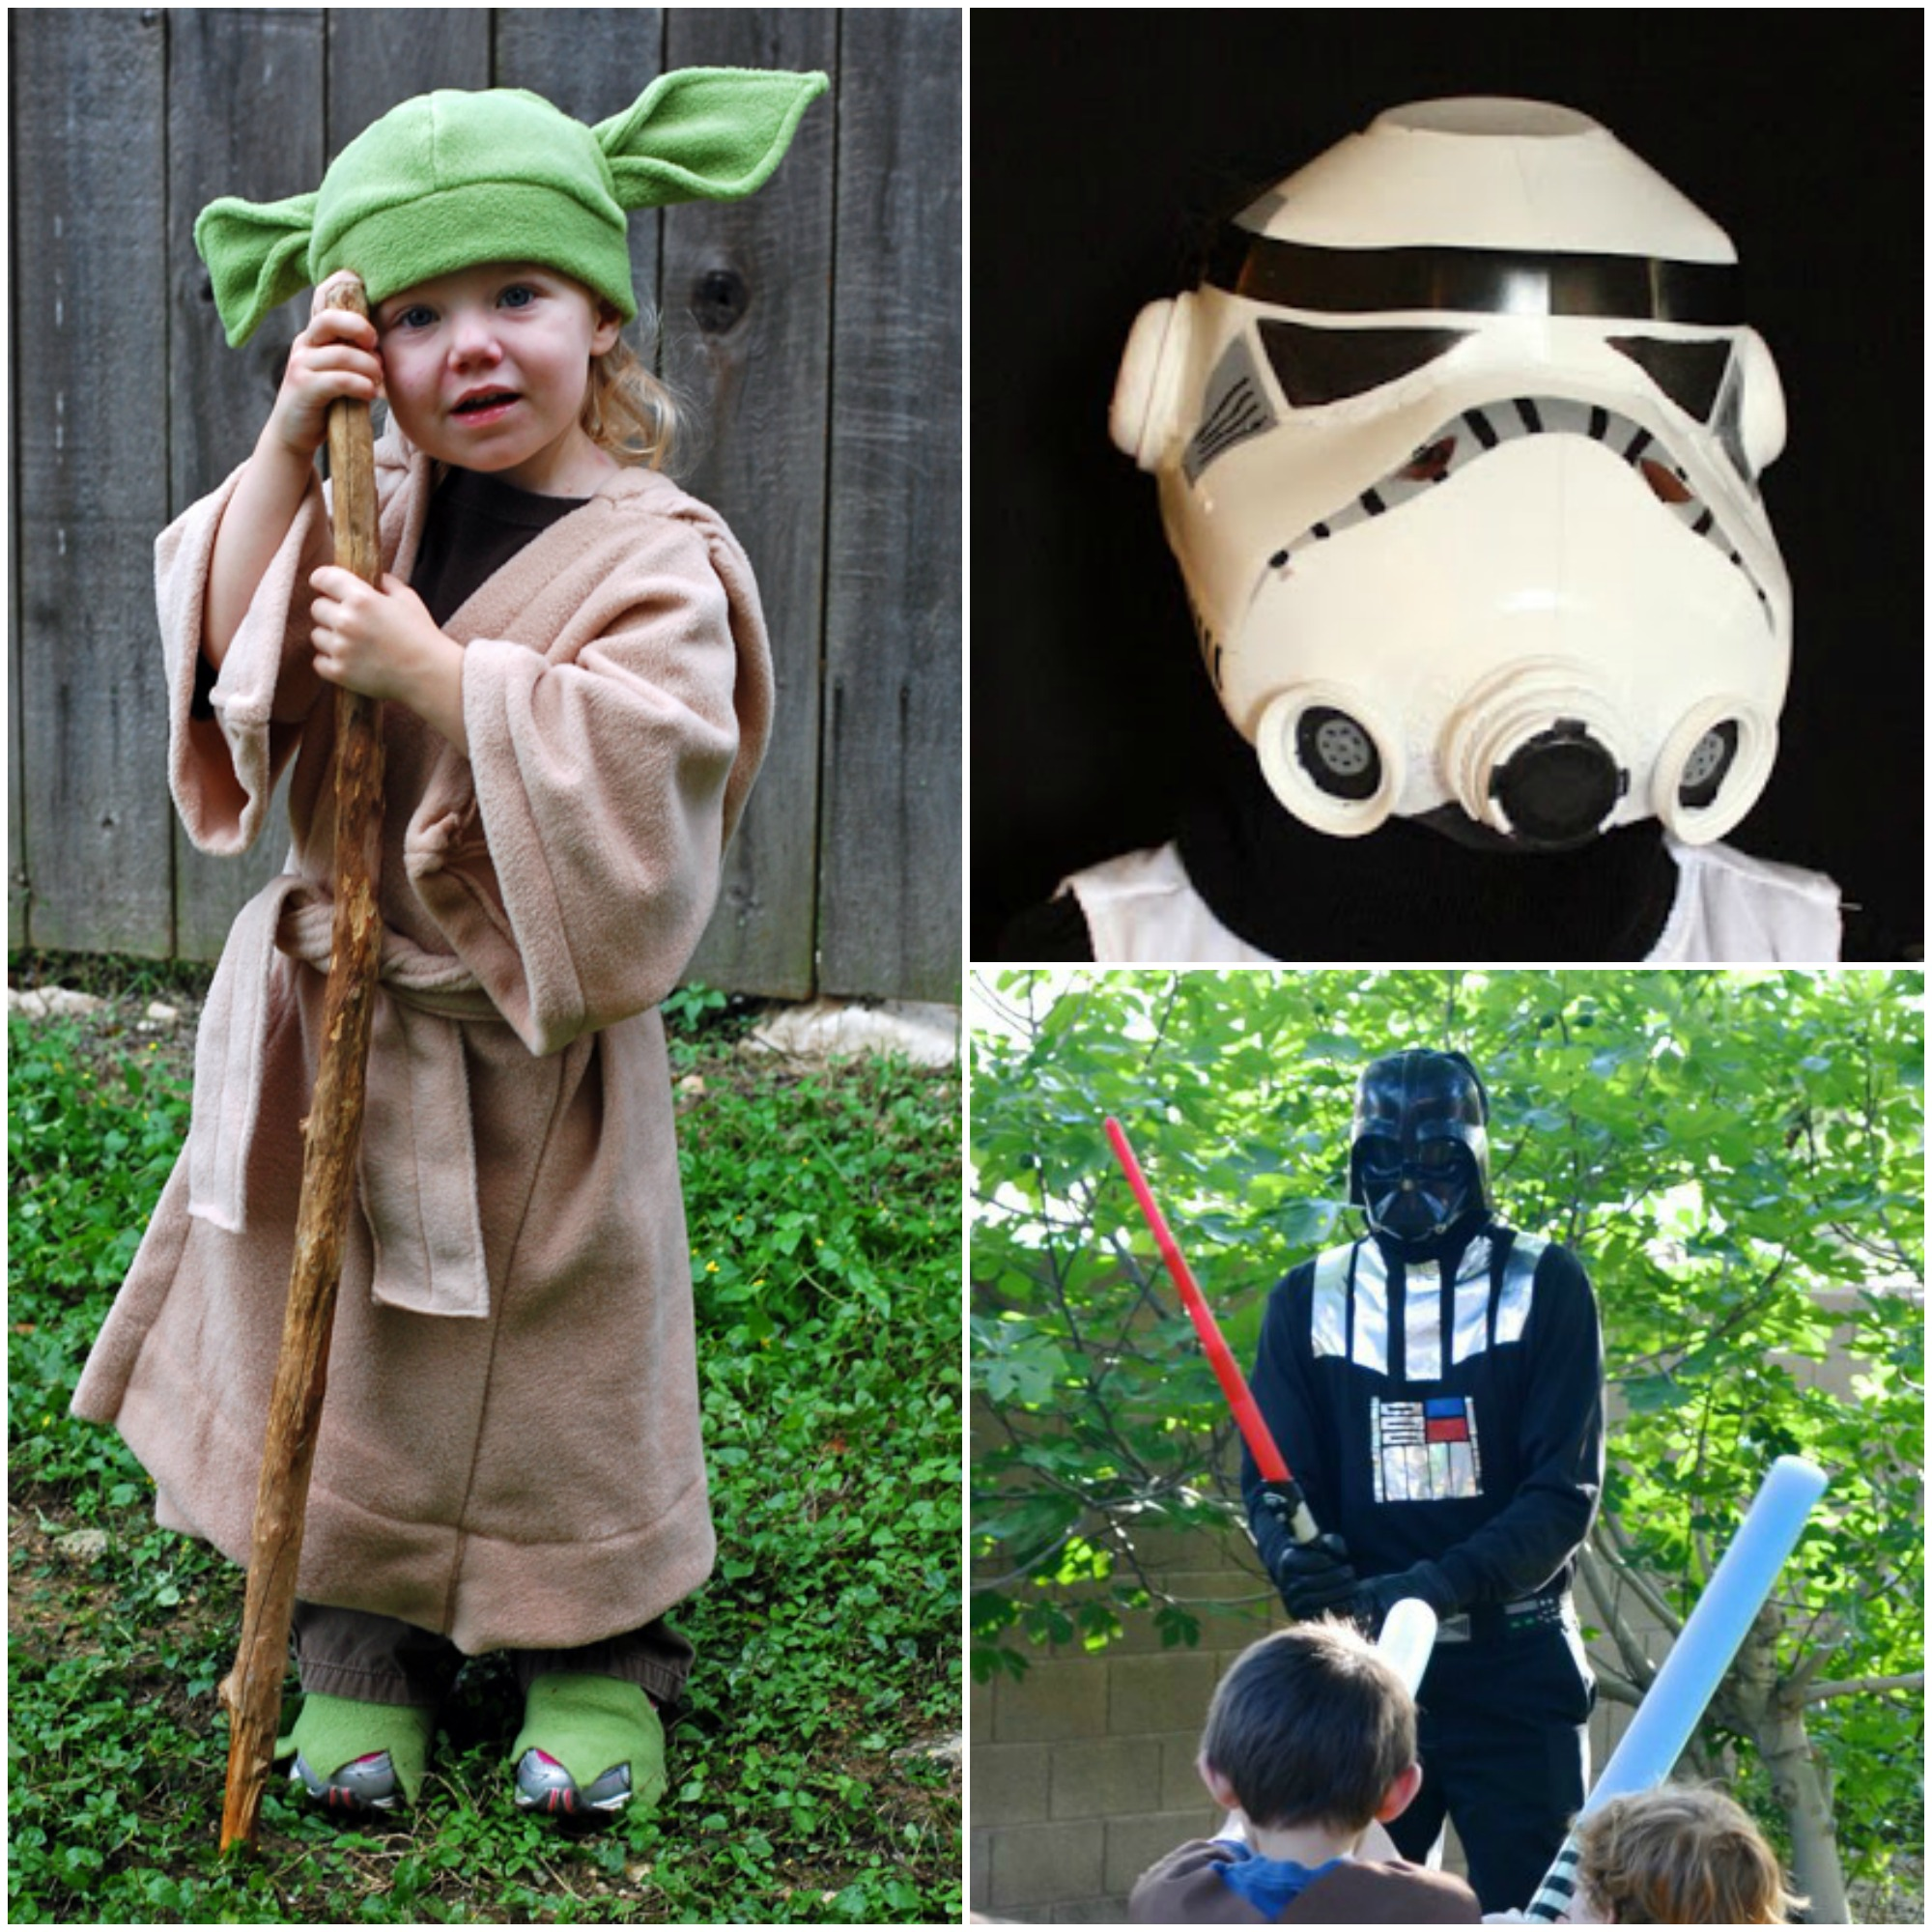 the best star wars costumes to make for kids frugal fun for boys